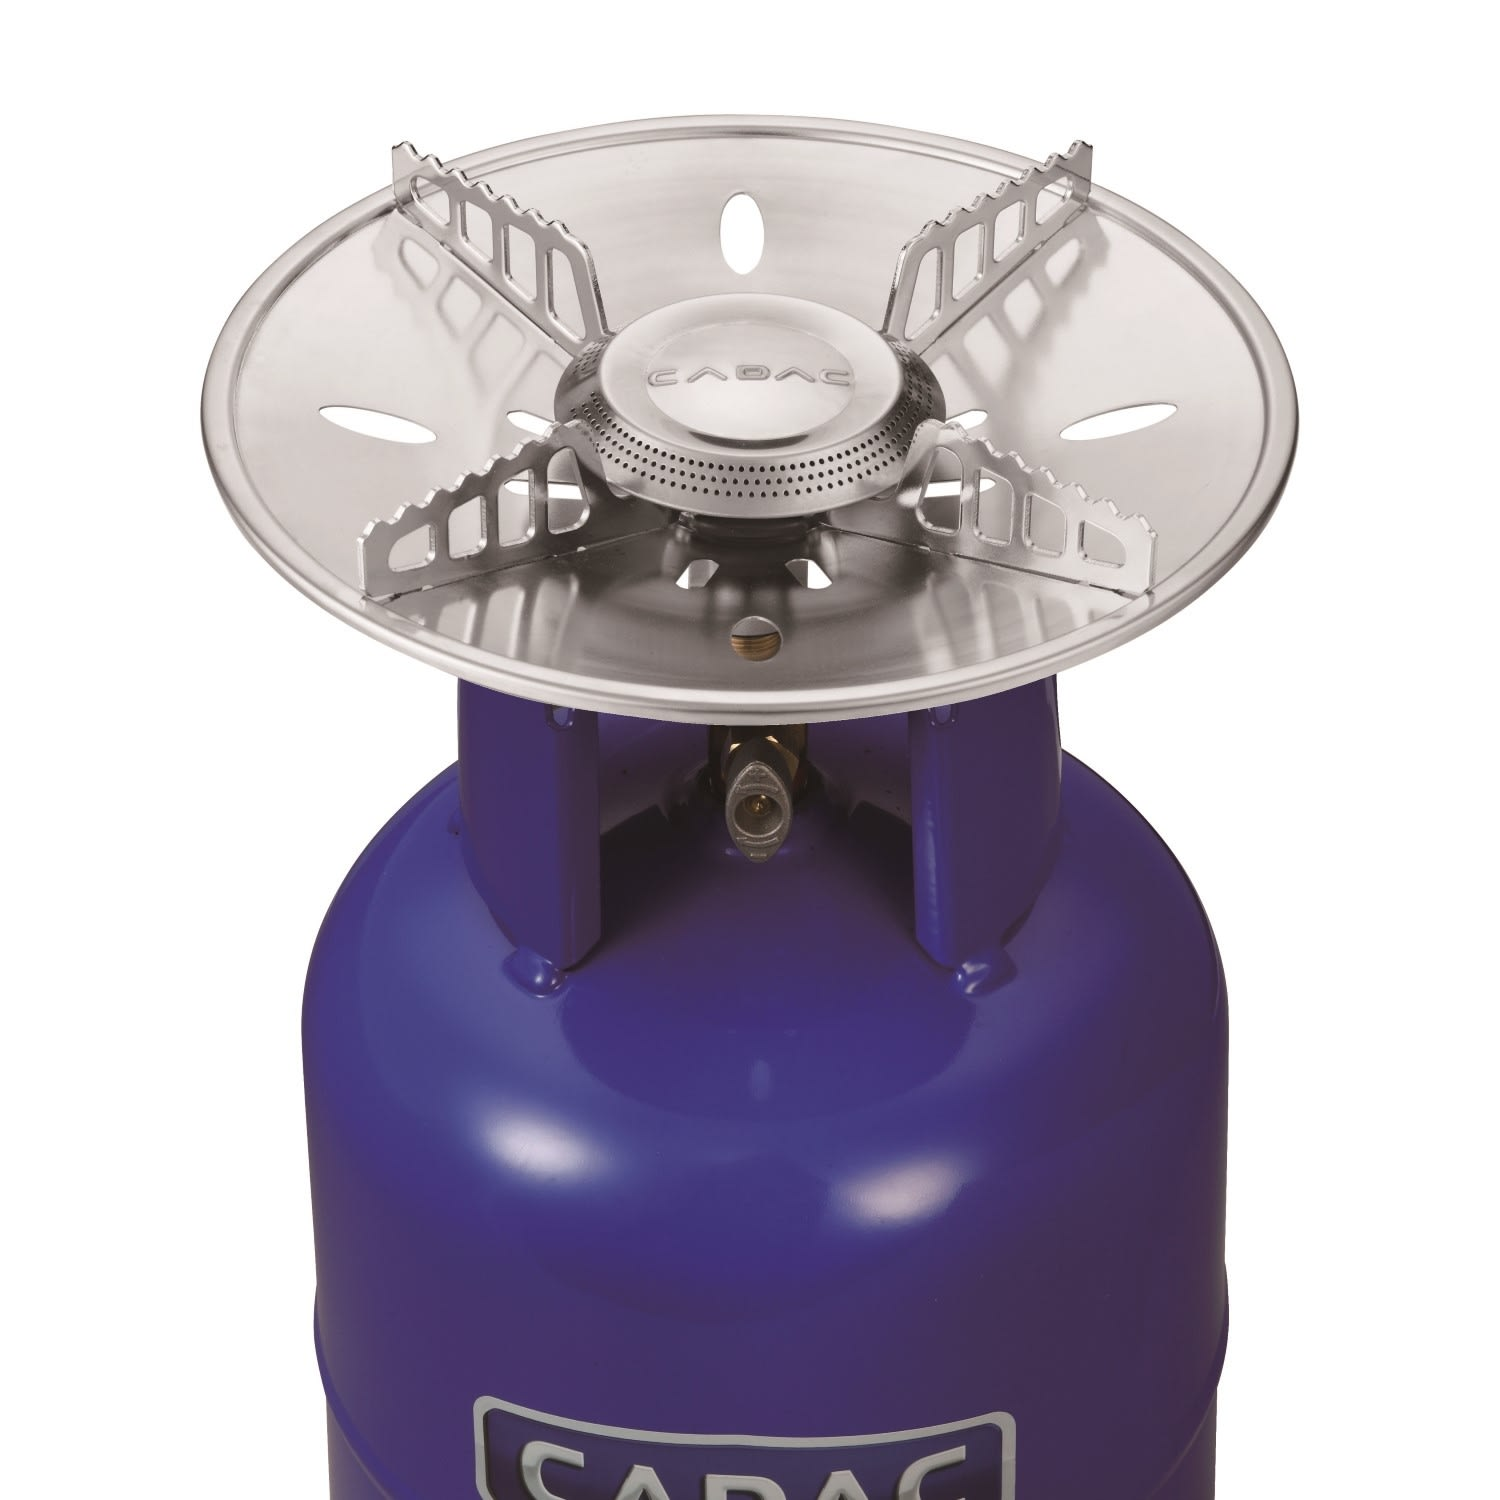 Cadac Power Cooker